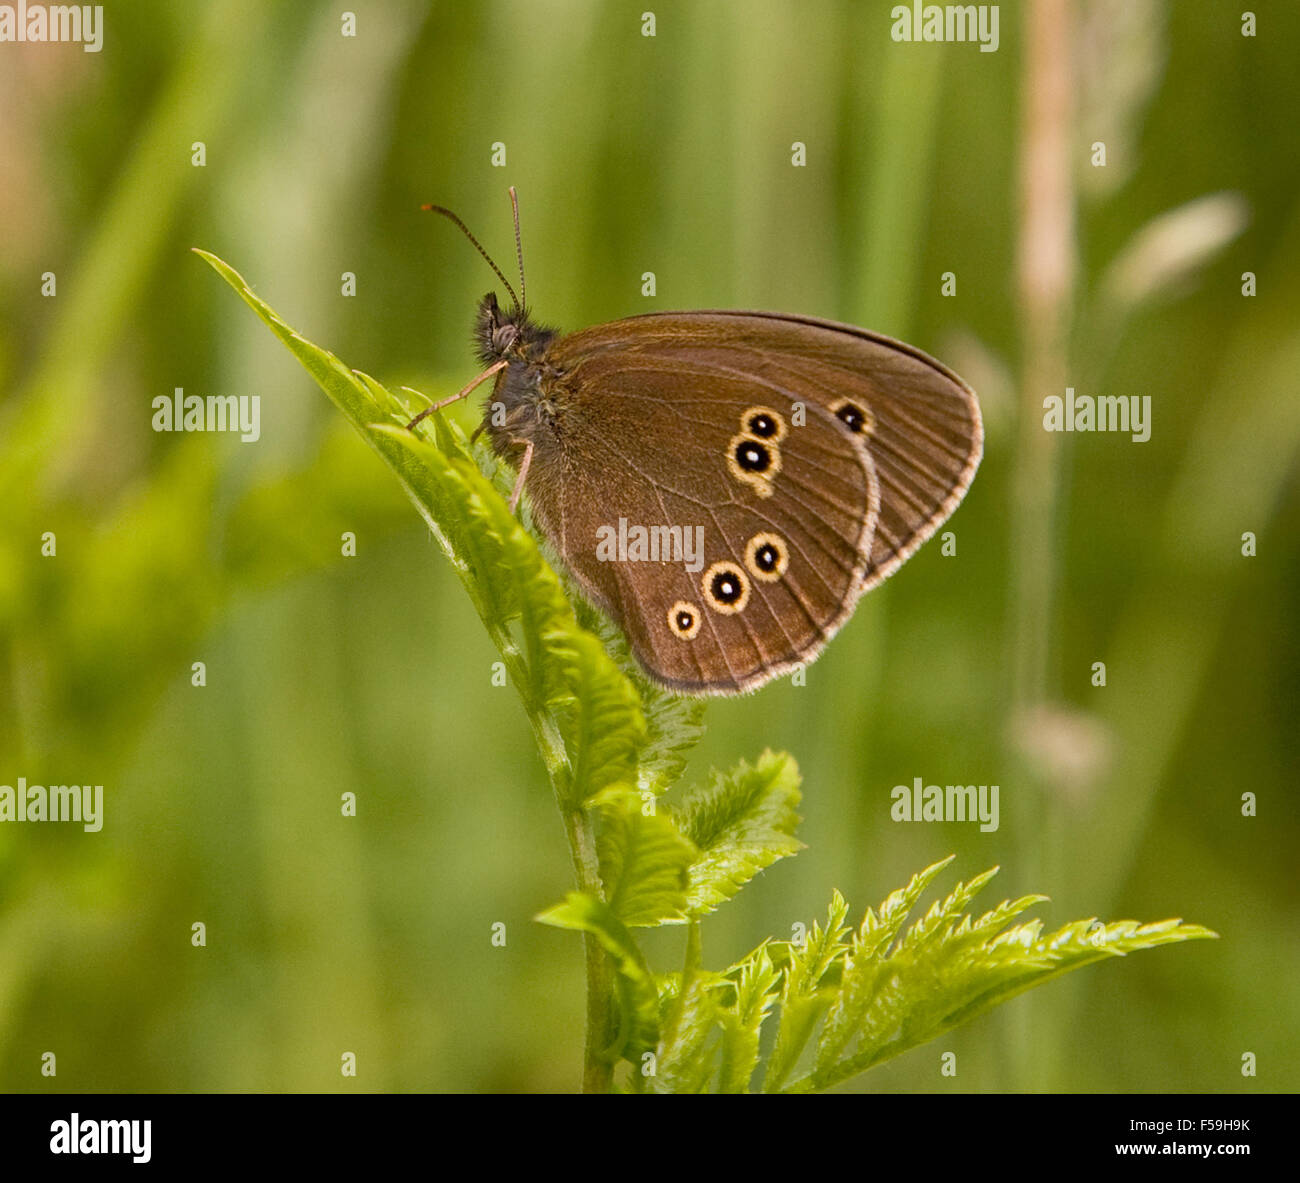 Ringlet Butterfly , Ahantopus hyperantus, In Delamere Forest ,Cheshire, England. - Stock Image